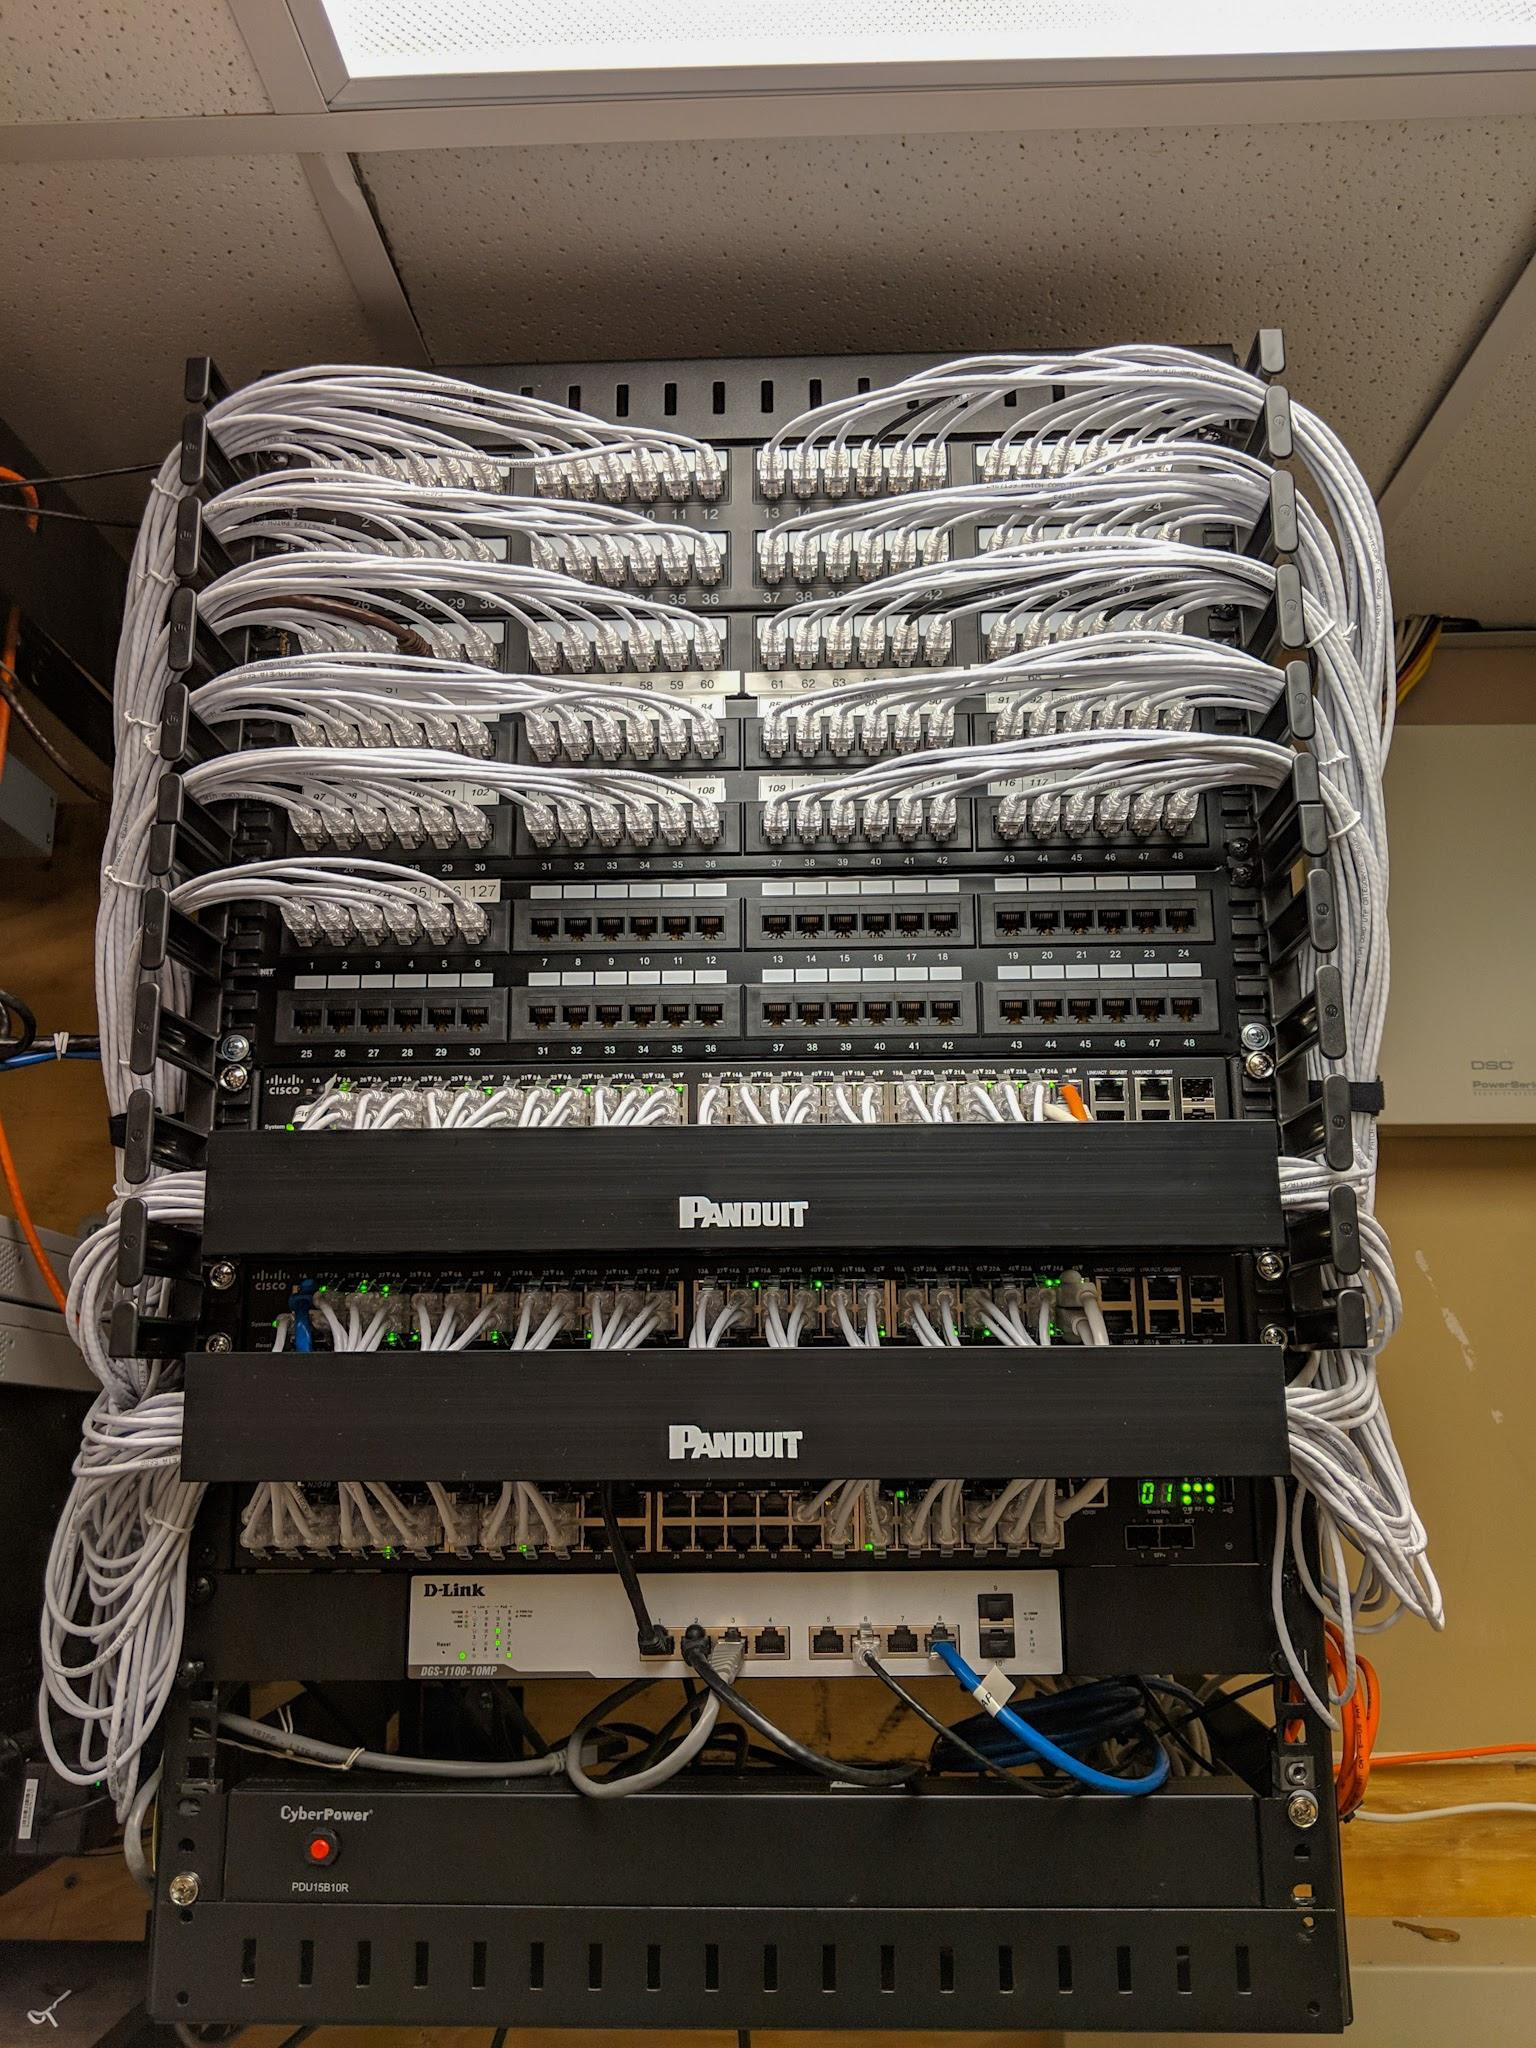 cable management in the data rack